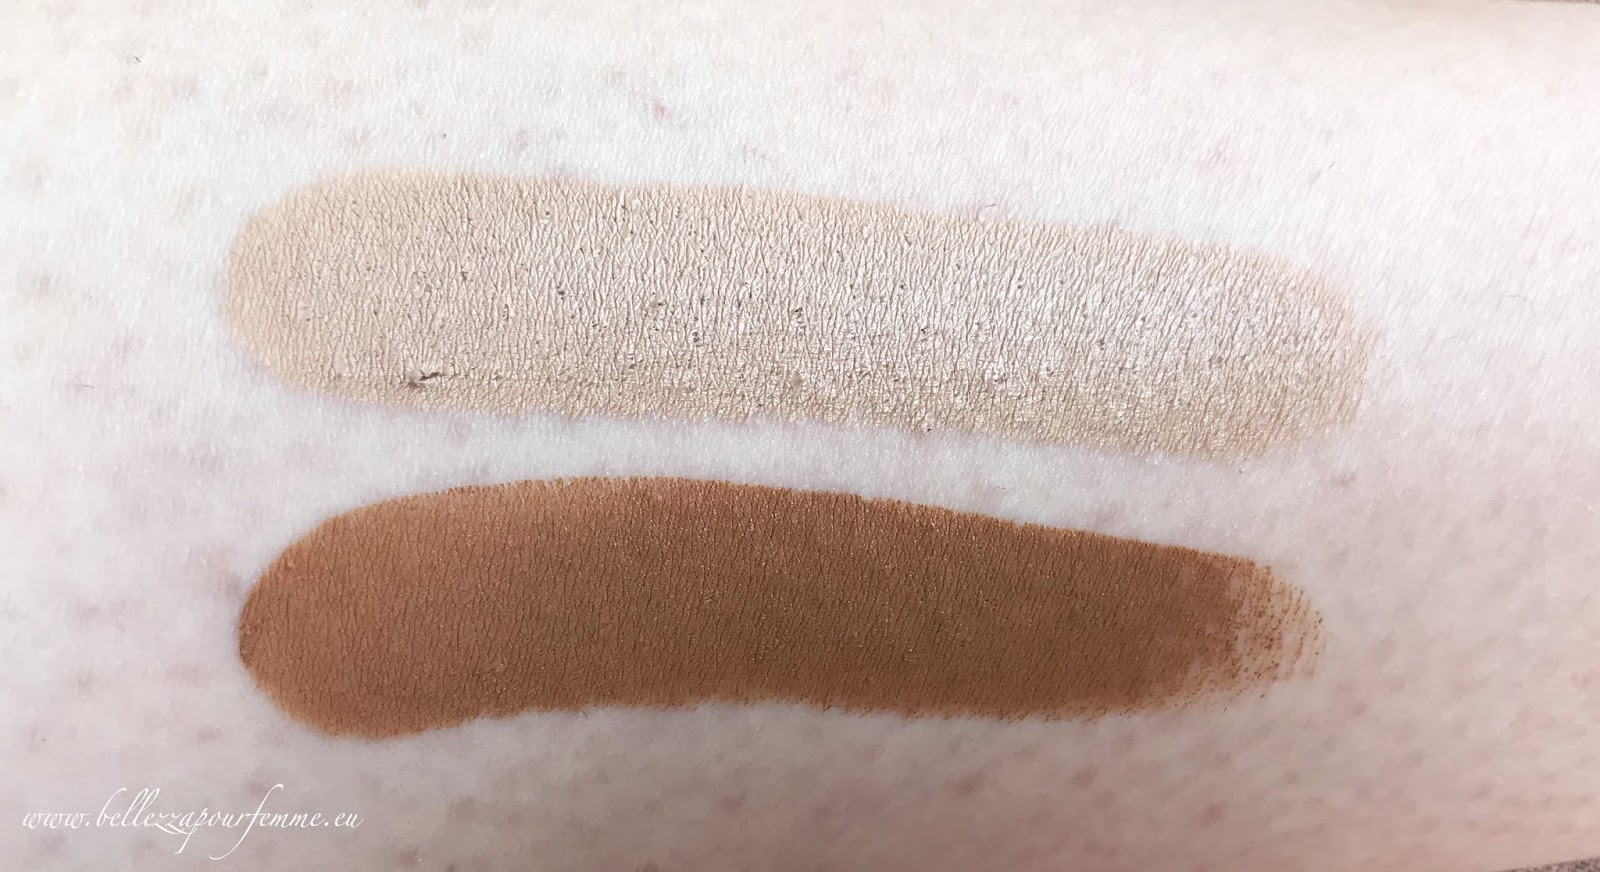 MESAUDA MILANO COVER STICK FOUNDATION - REVIEW & SWATCHES